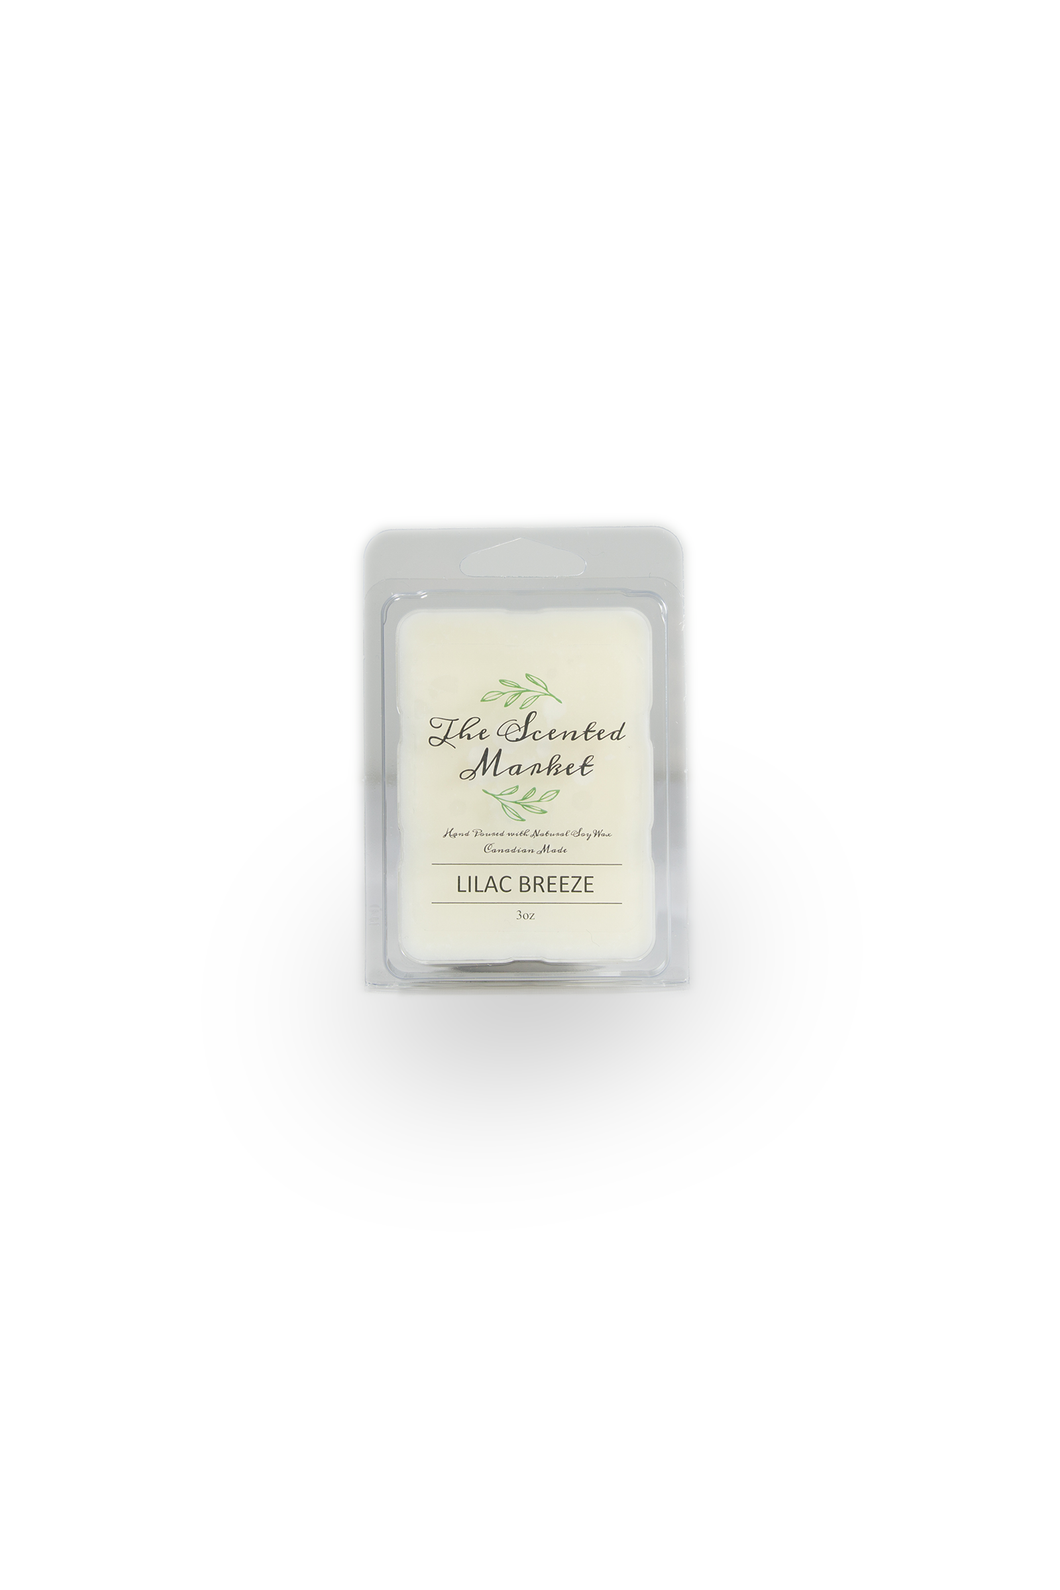 LILAC BREEZE Soy Wax Melt